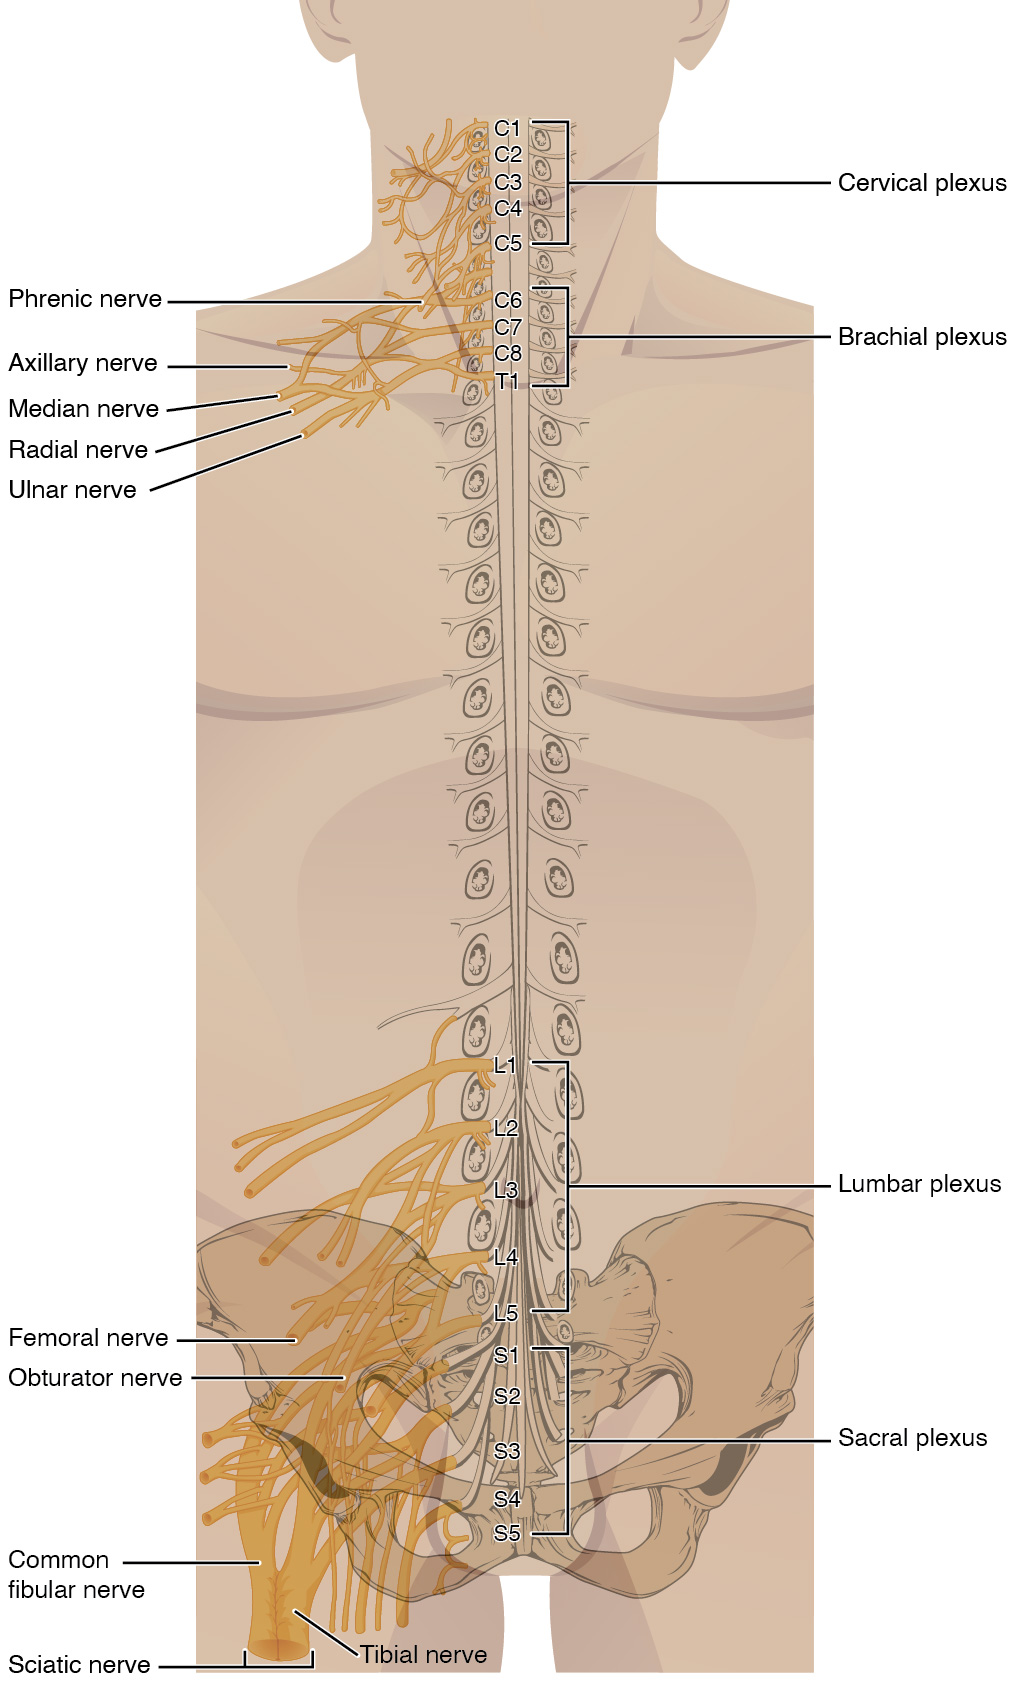 This figure shows a torso of a human body. The spinal cord is shown in the body and the main nerves along the spinal cord are labeled.